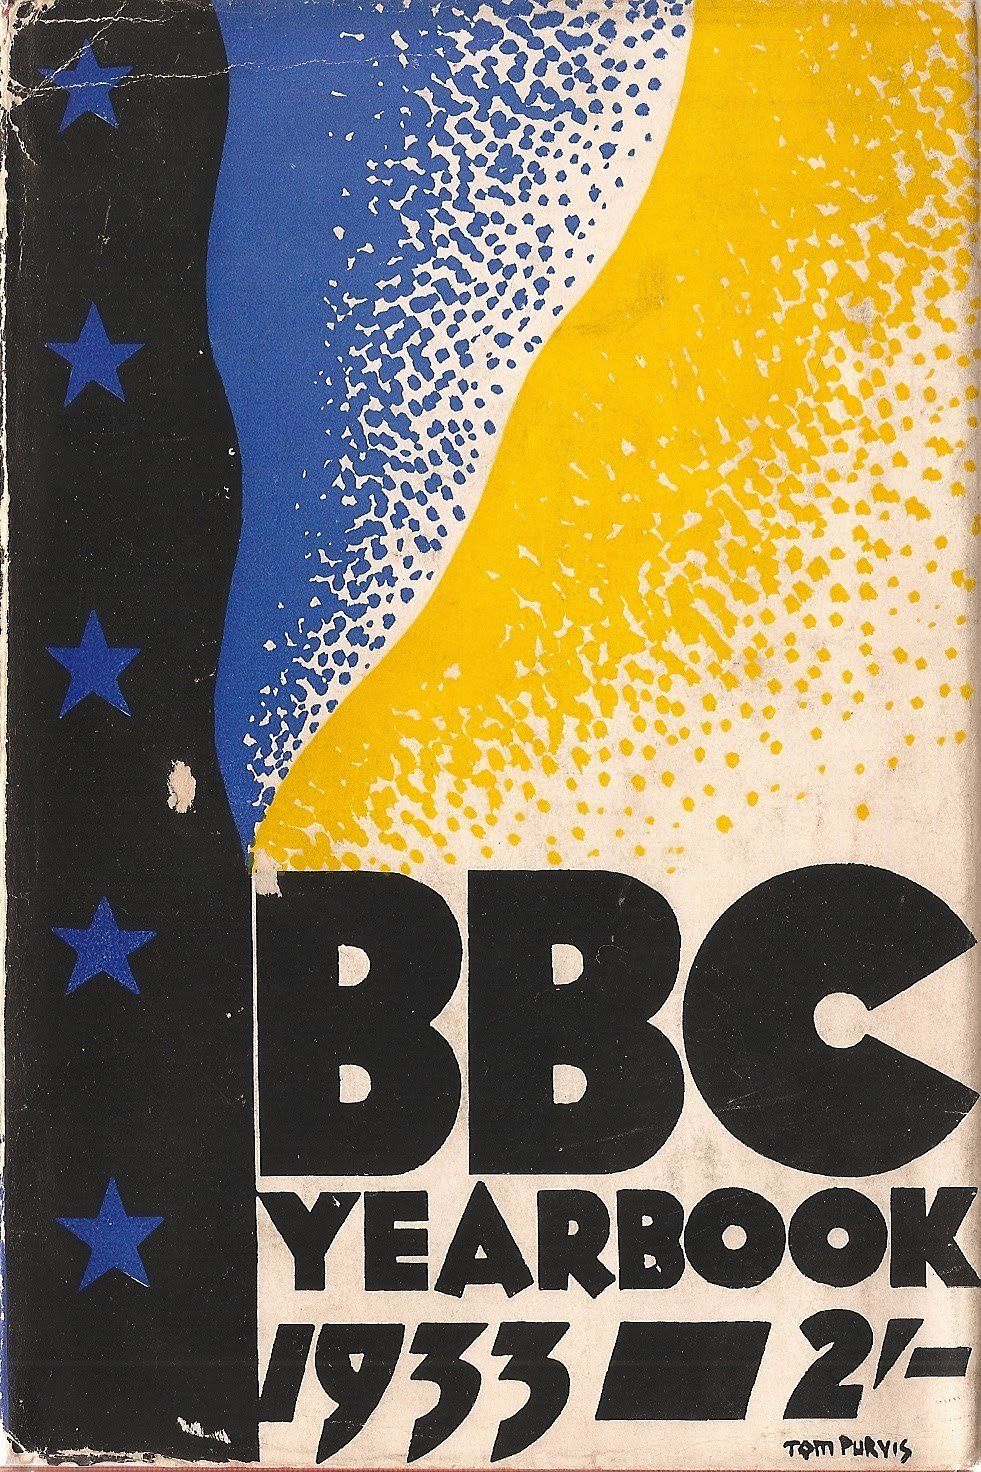 BBC Yearbook 1933 Jacket